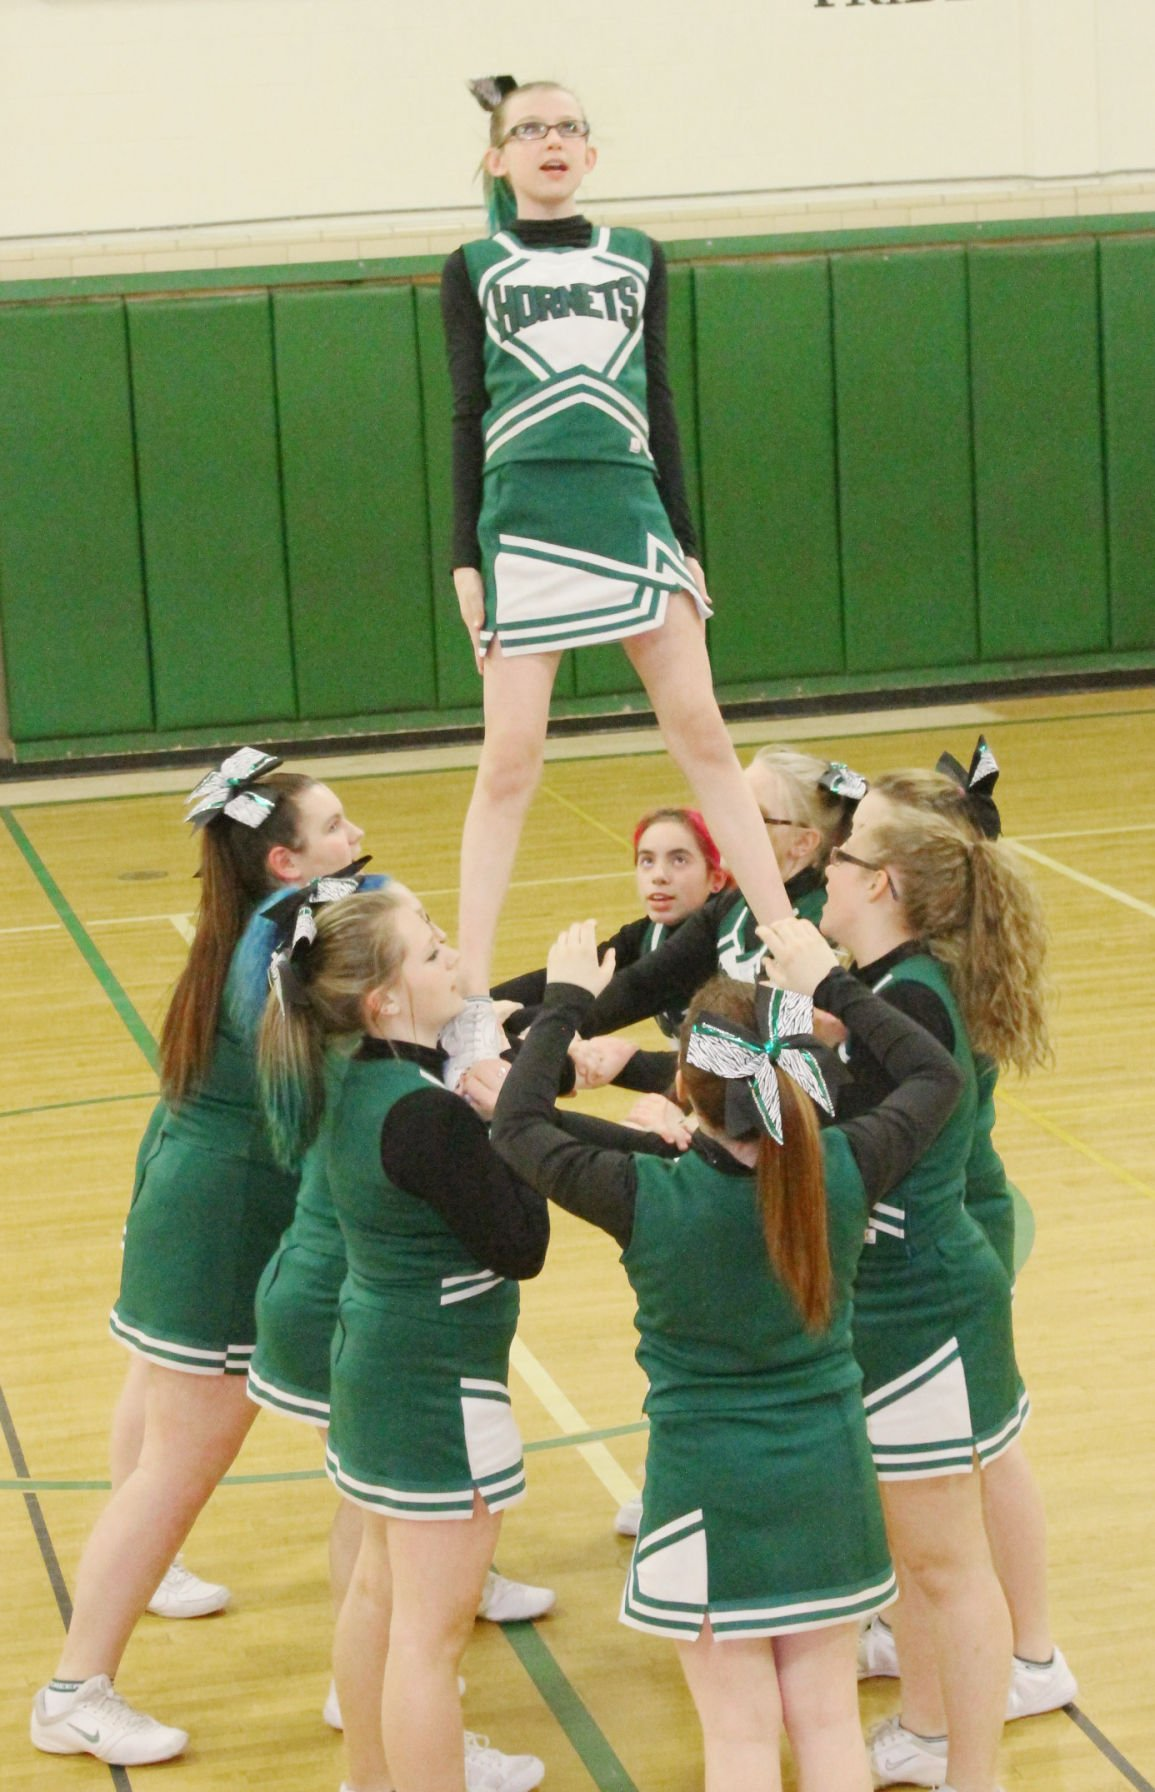 RLB cheer squad places first in stunt competition | Sports ...